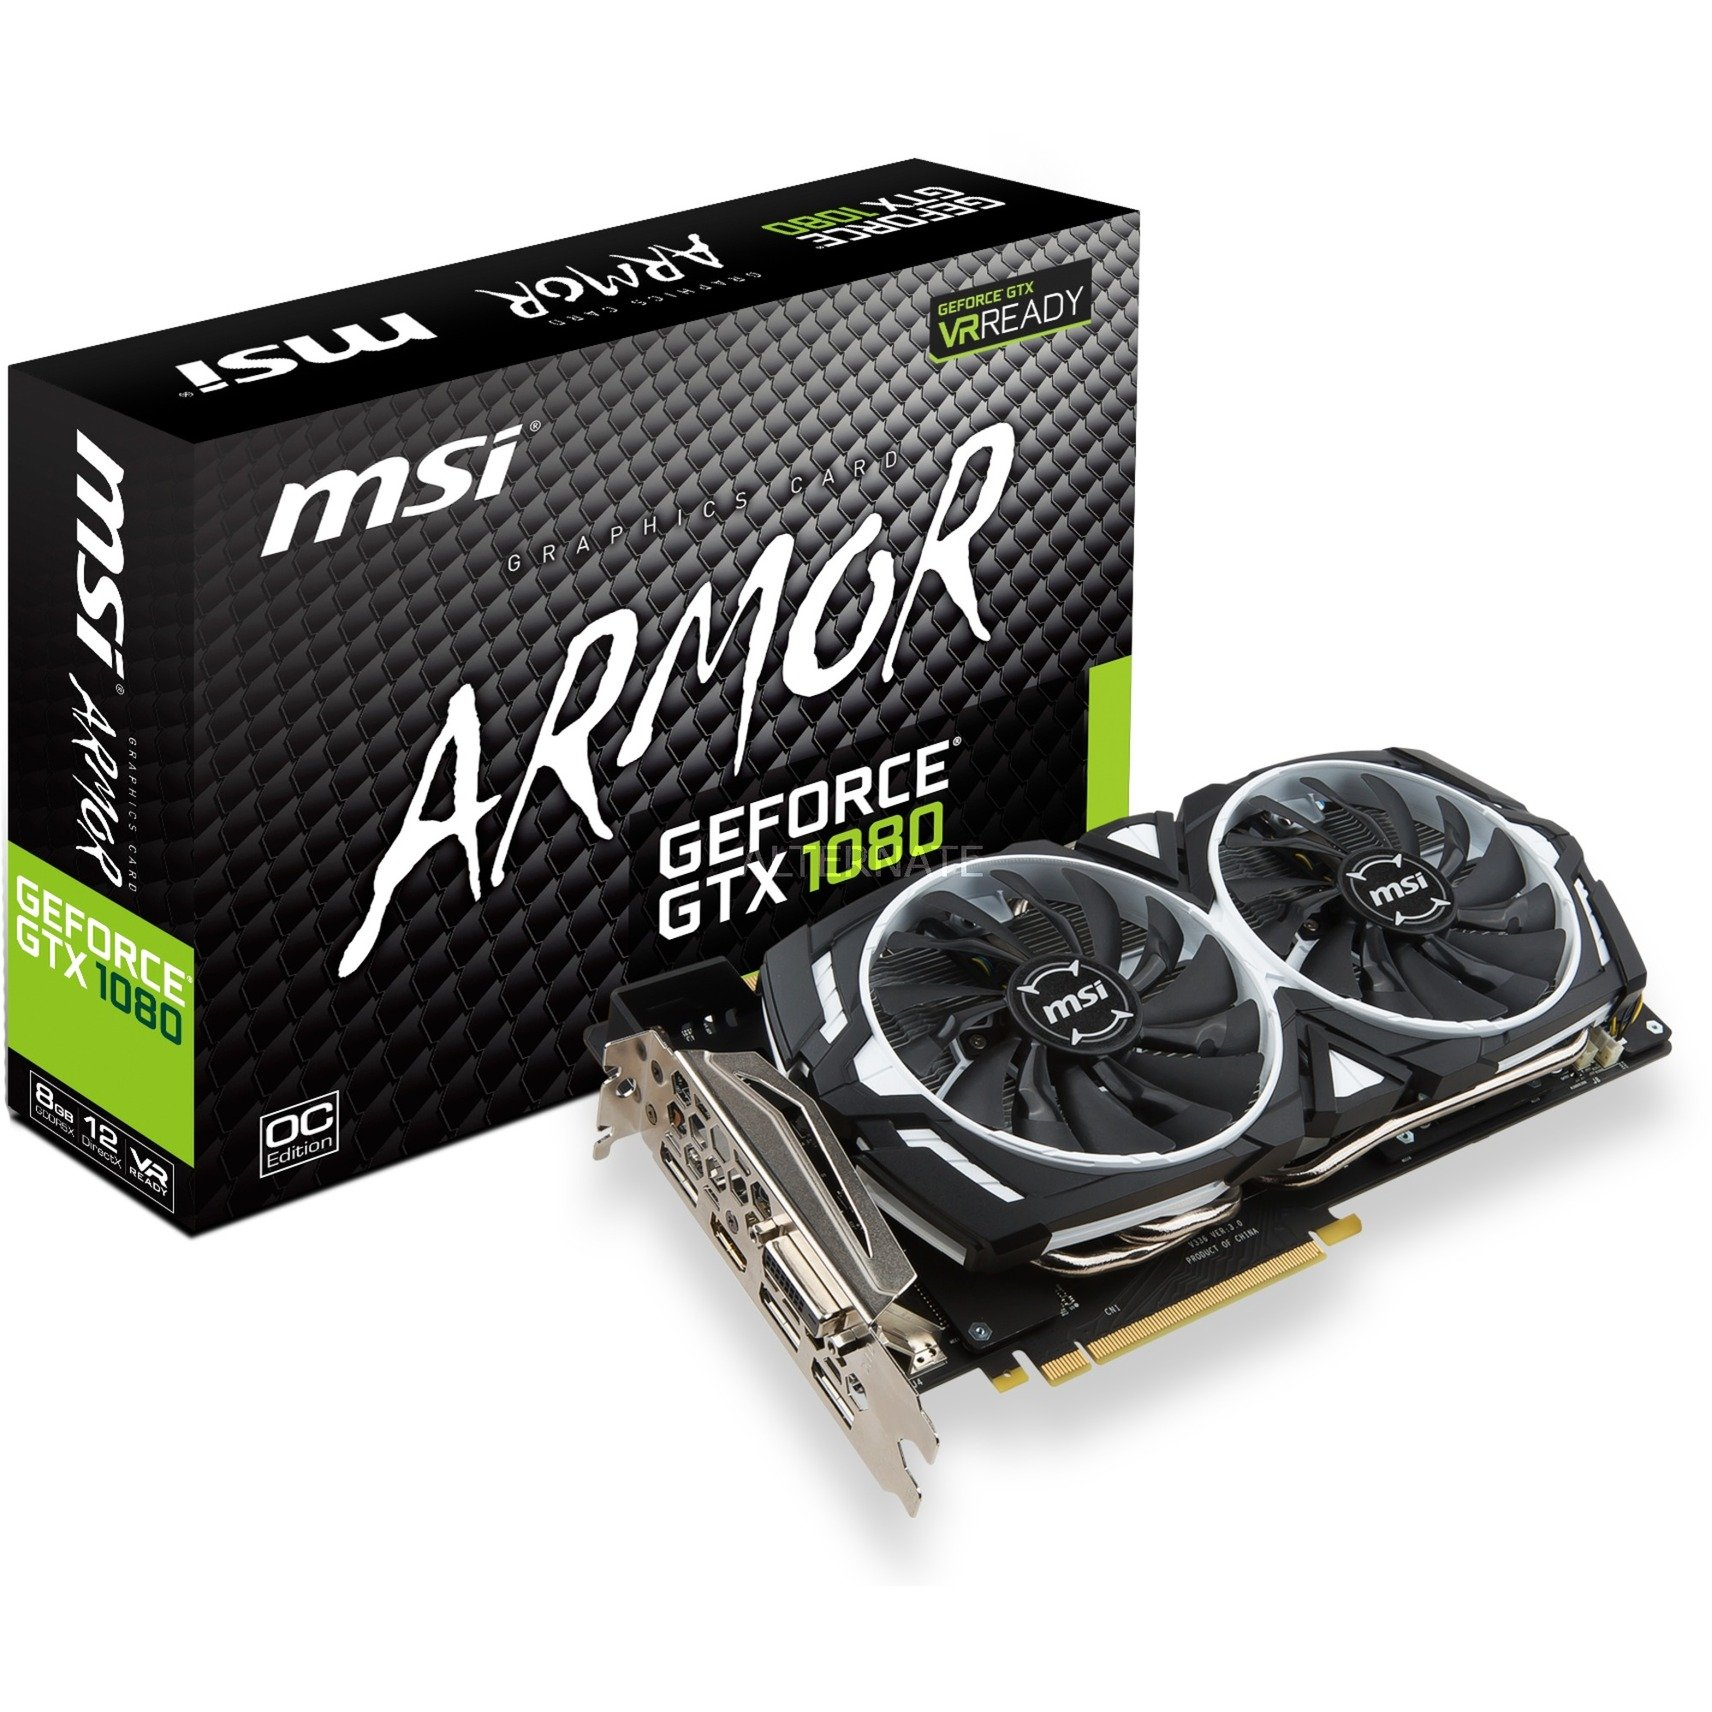 GeForce GTX 1080 ARMOR 8G OC, Carte graphique